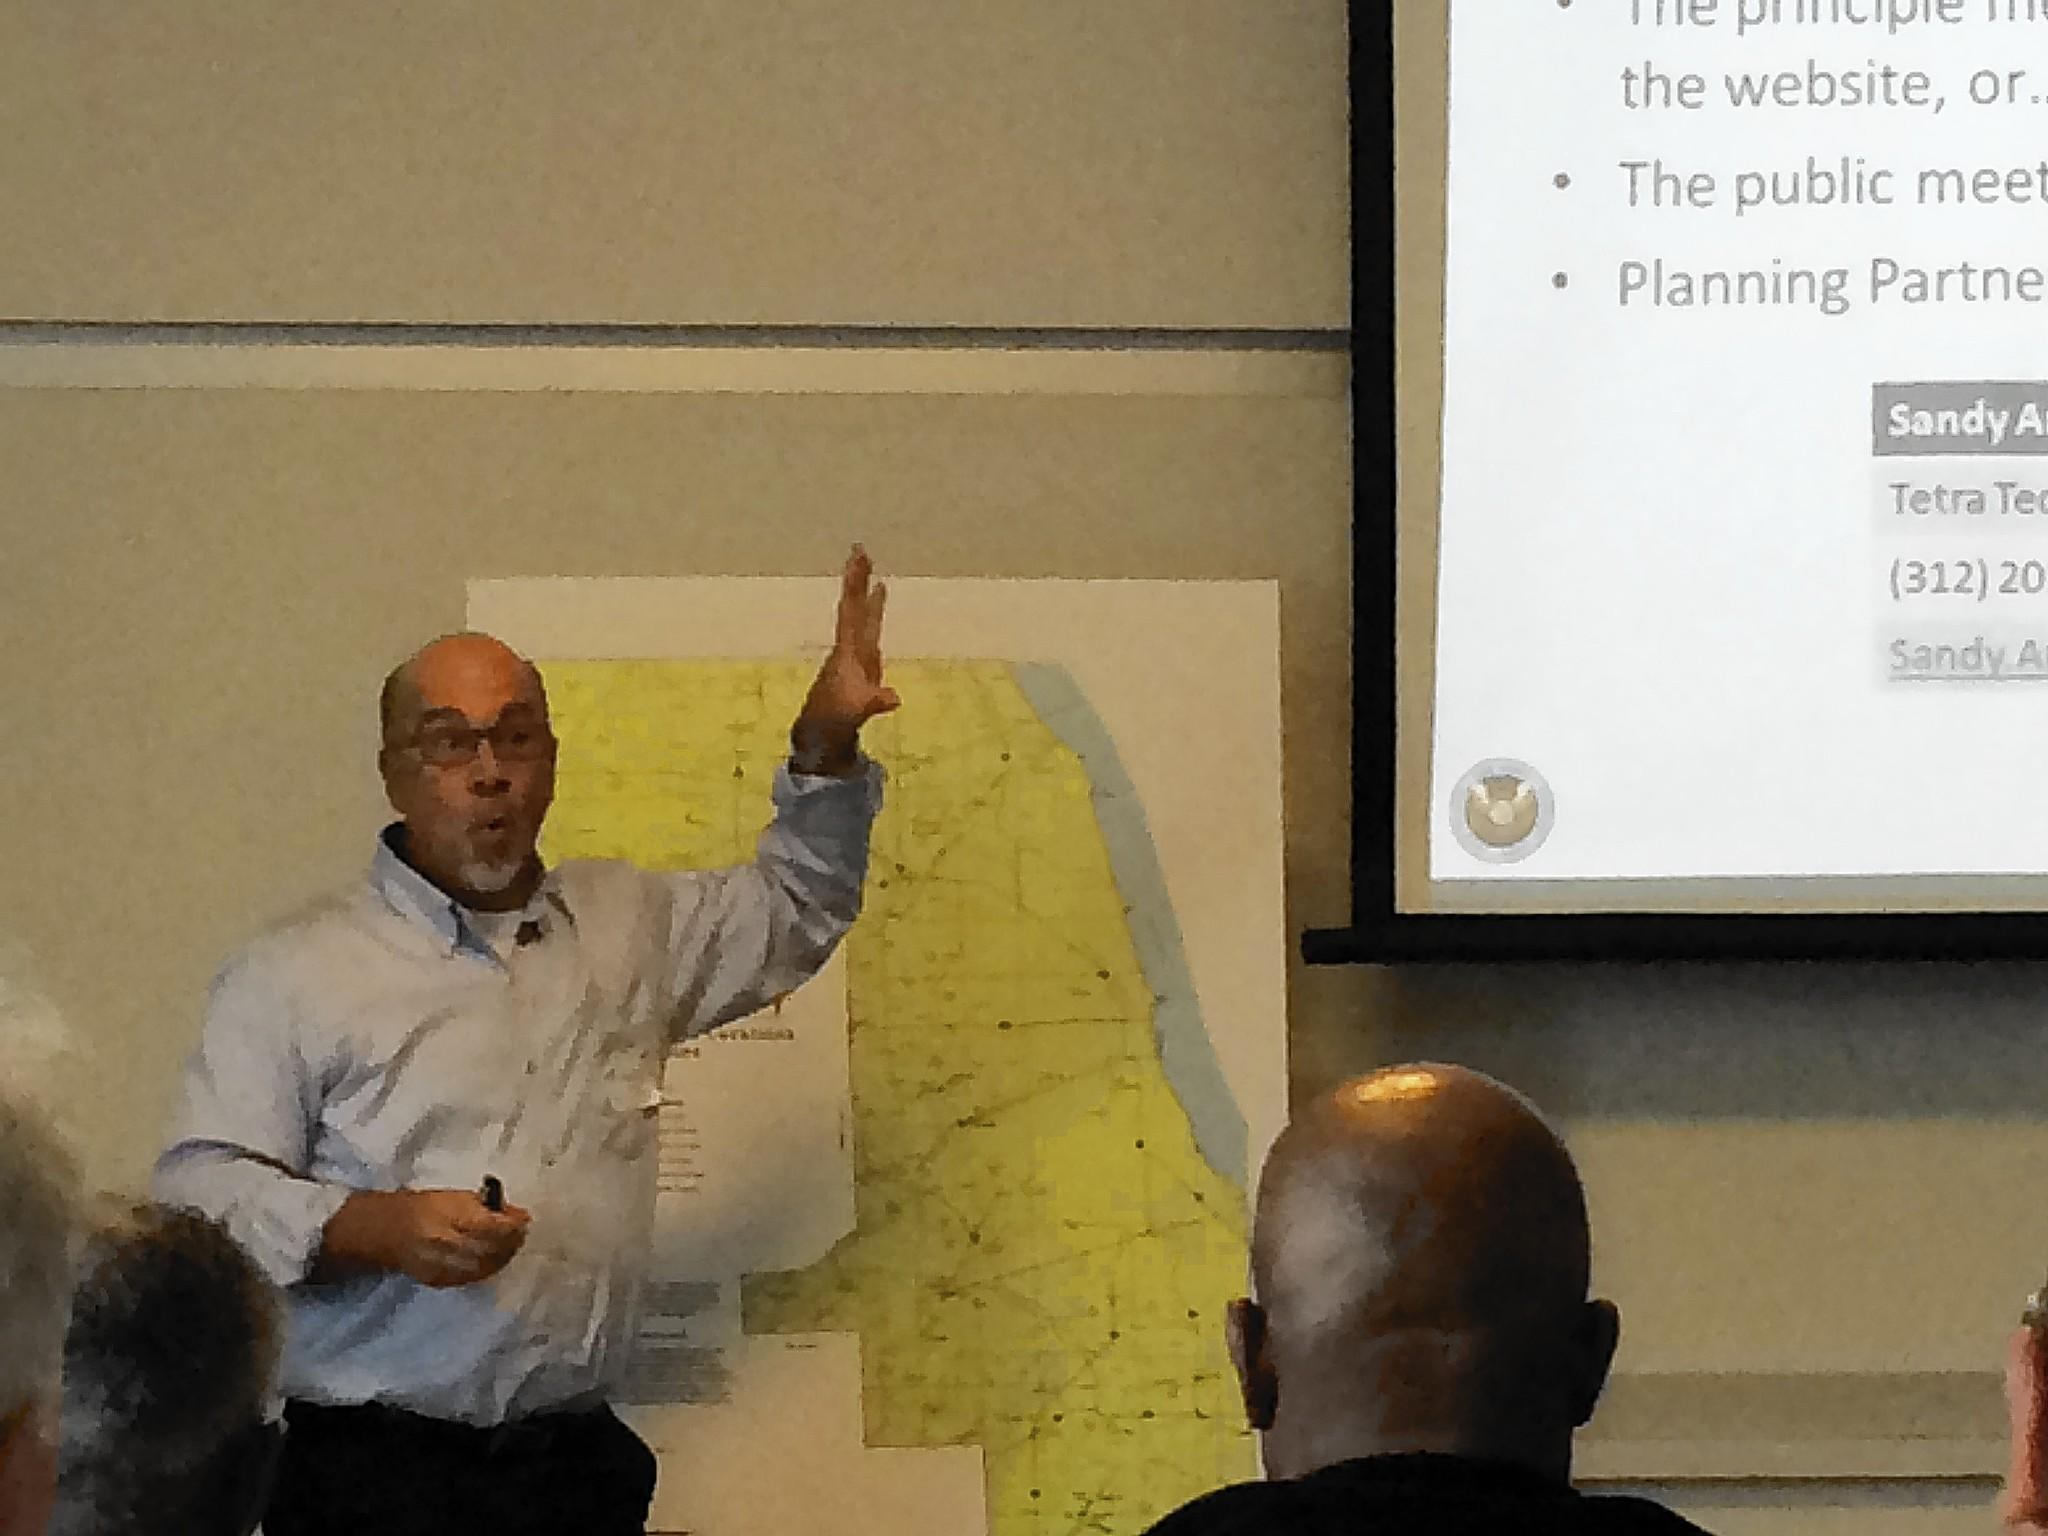 Rob Flaner, hazard mitigation program manager at Tetra Tech Inc., which the county hired to help develop its hazard mitigation plan, presents a draft of the plan at a meeting at the Orland Fire Protection District.